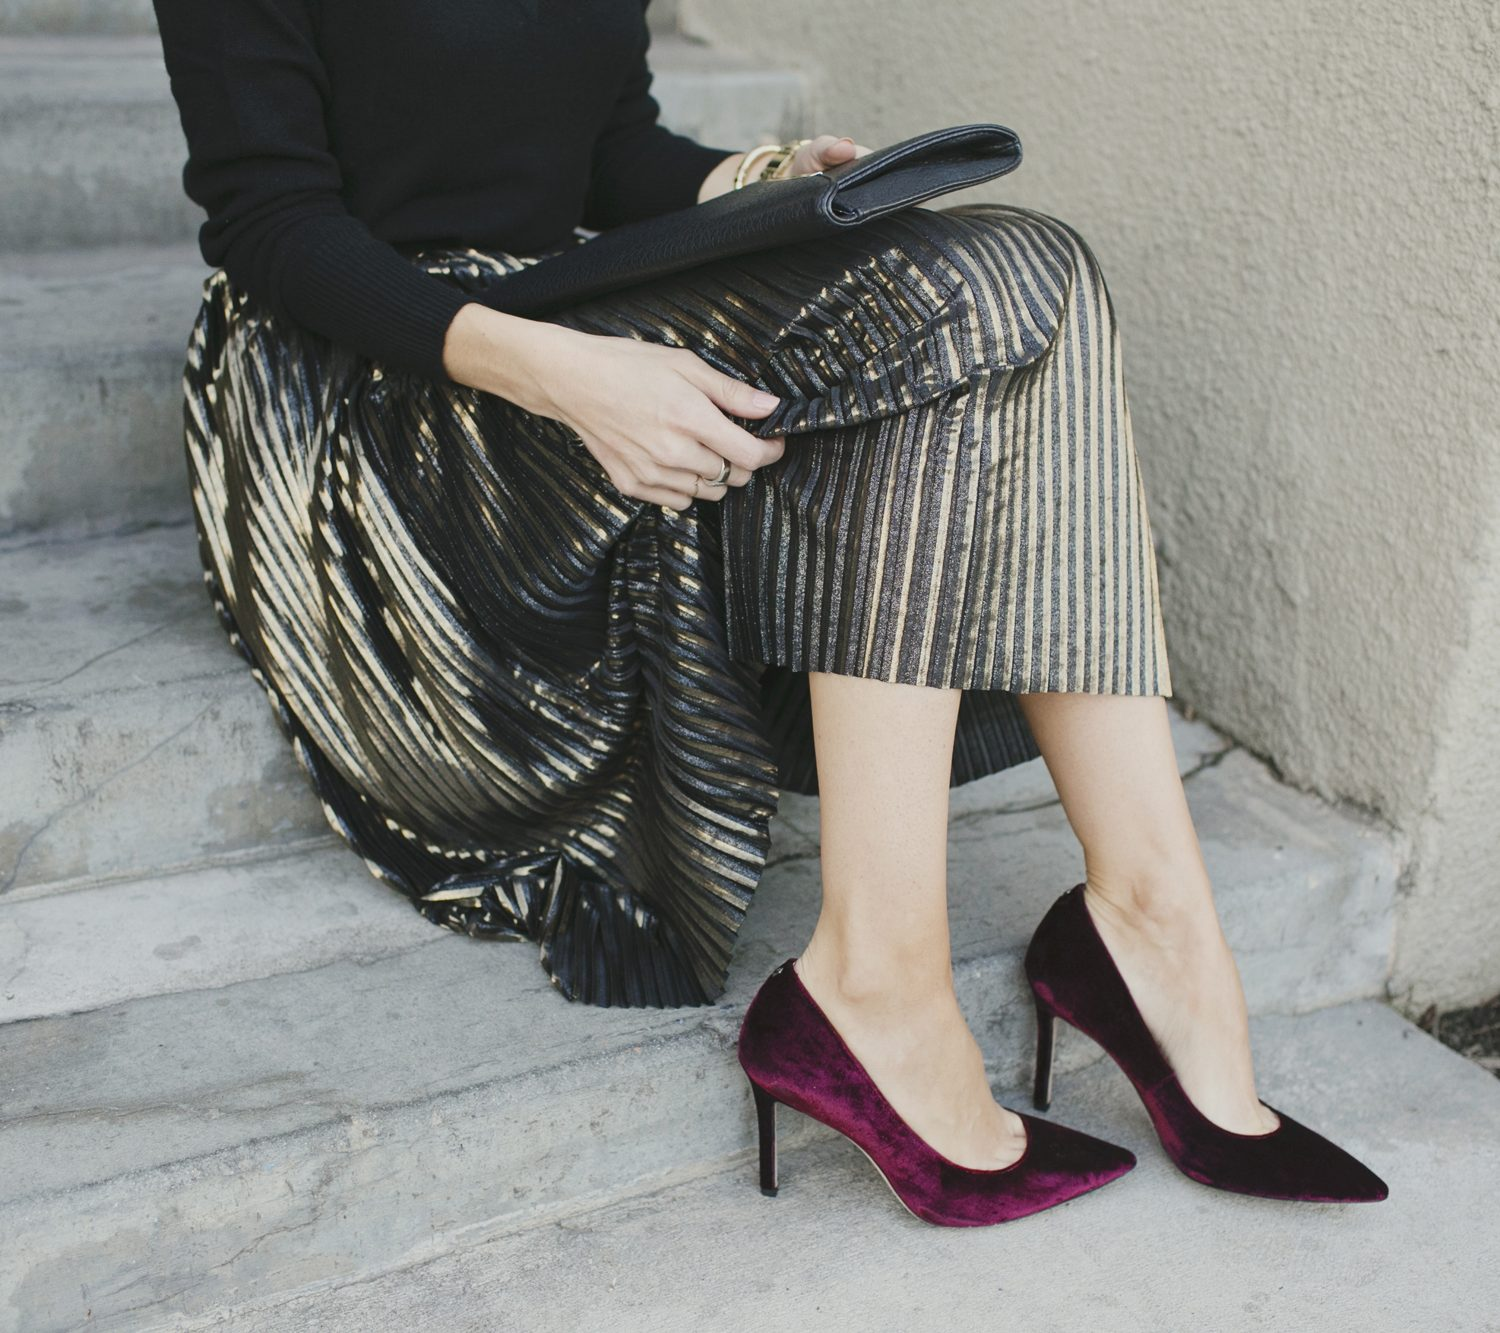 Merrick's Art Gold Skirt and Velvet Pumps